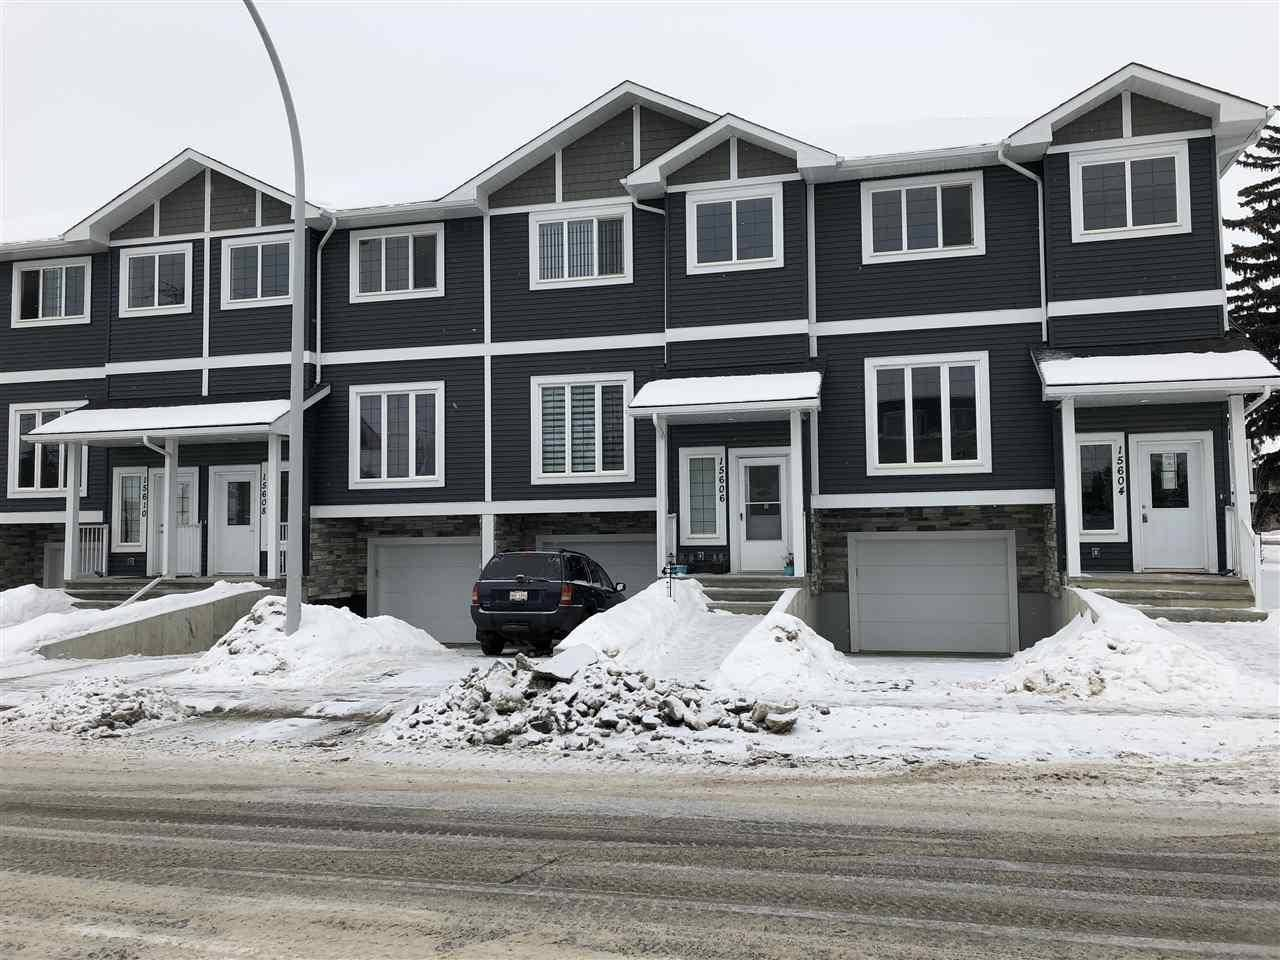 Townhouse for sale at 15604 97 Ave Nw Edmonton Alberta - MLS: E4187510